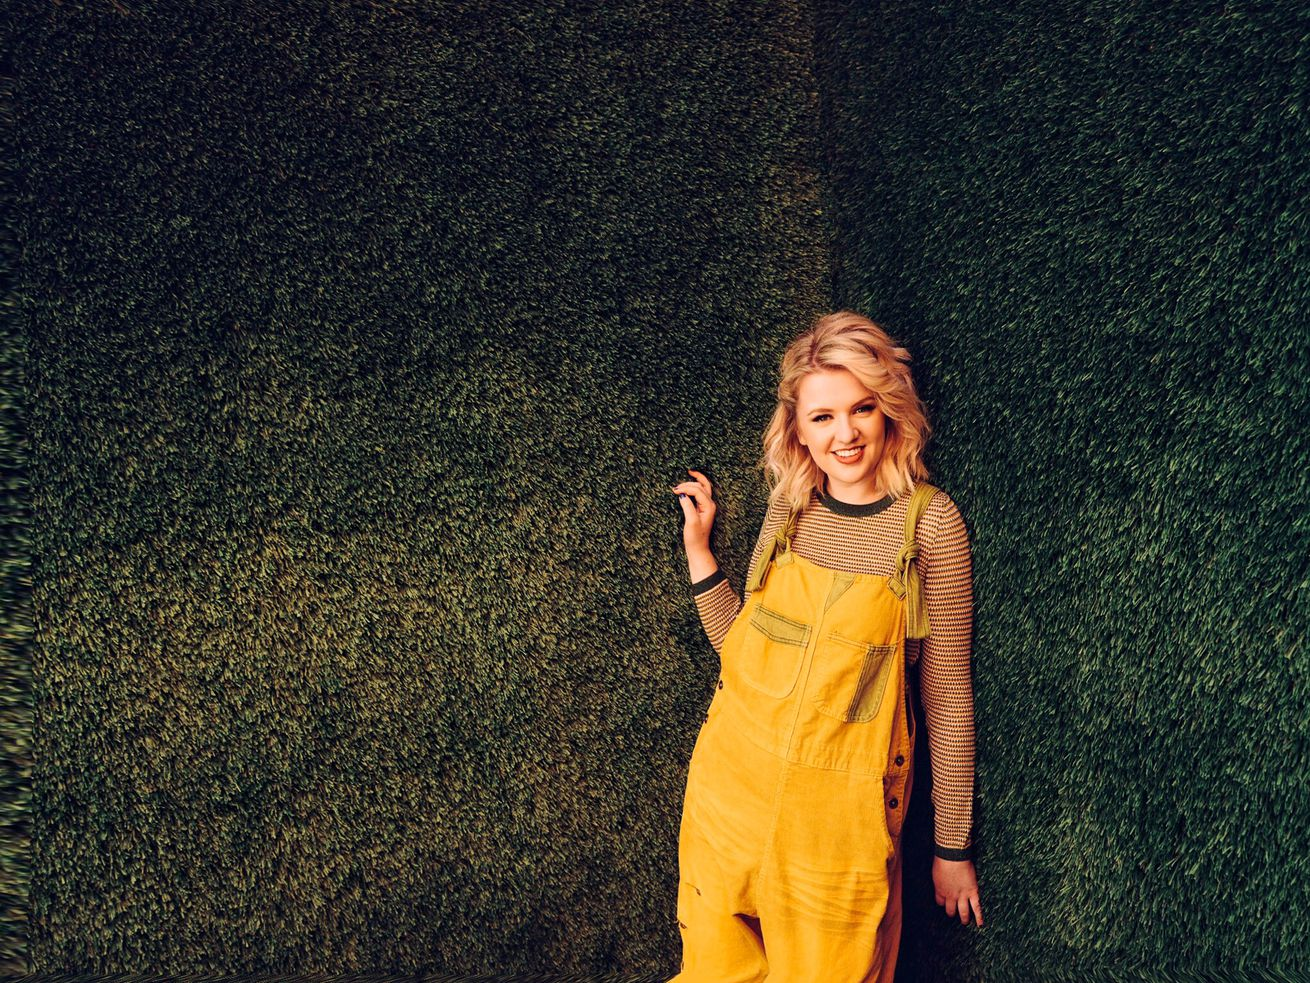 All 4 'Voice' judges rejected Maddie Poppe. Then she won 'American Idol'